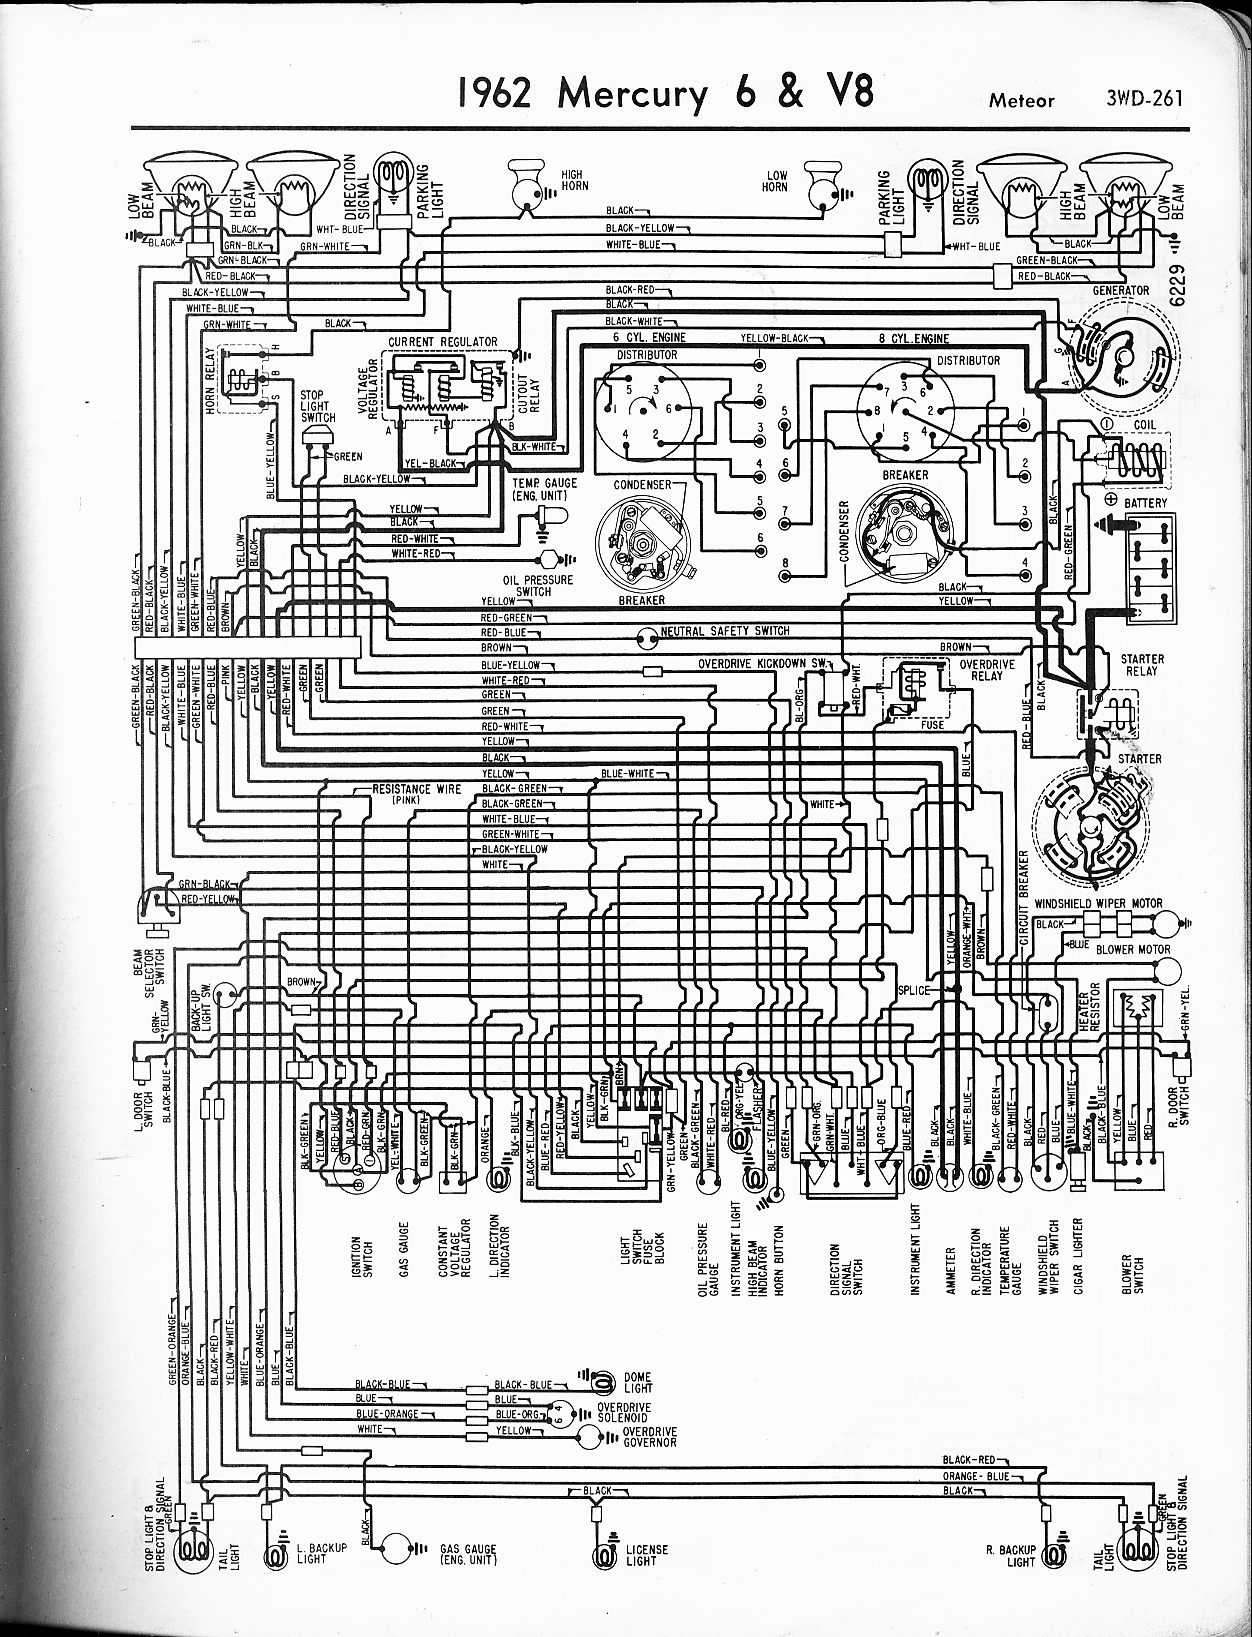 MWire5765 261 mercury wiring diagrams the old car manual project 1963 mercury comet wiring diagram at fashall.co